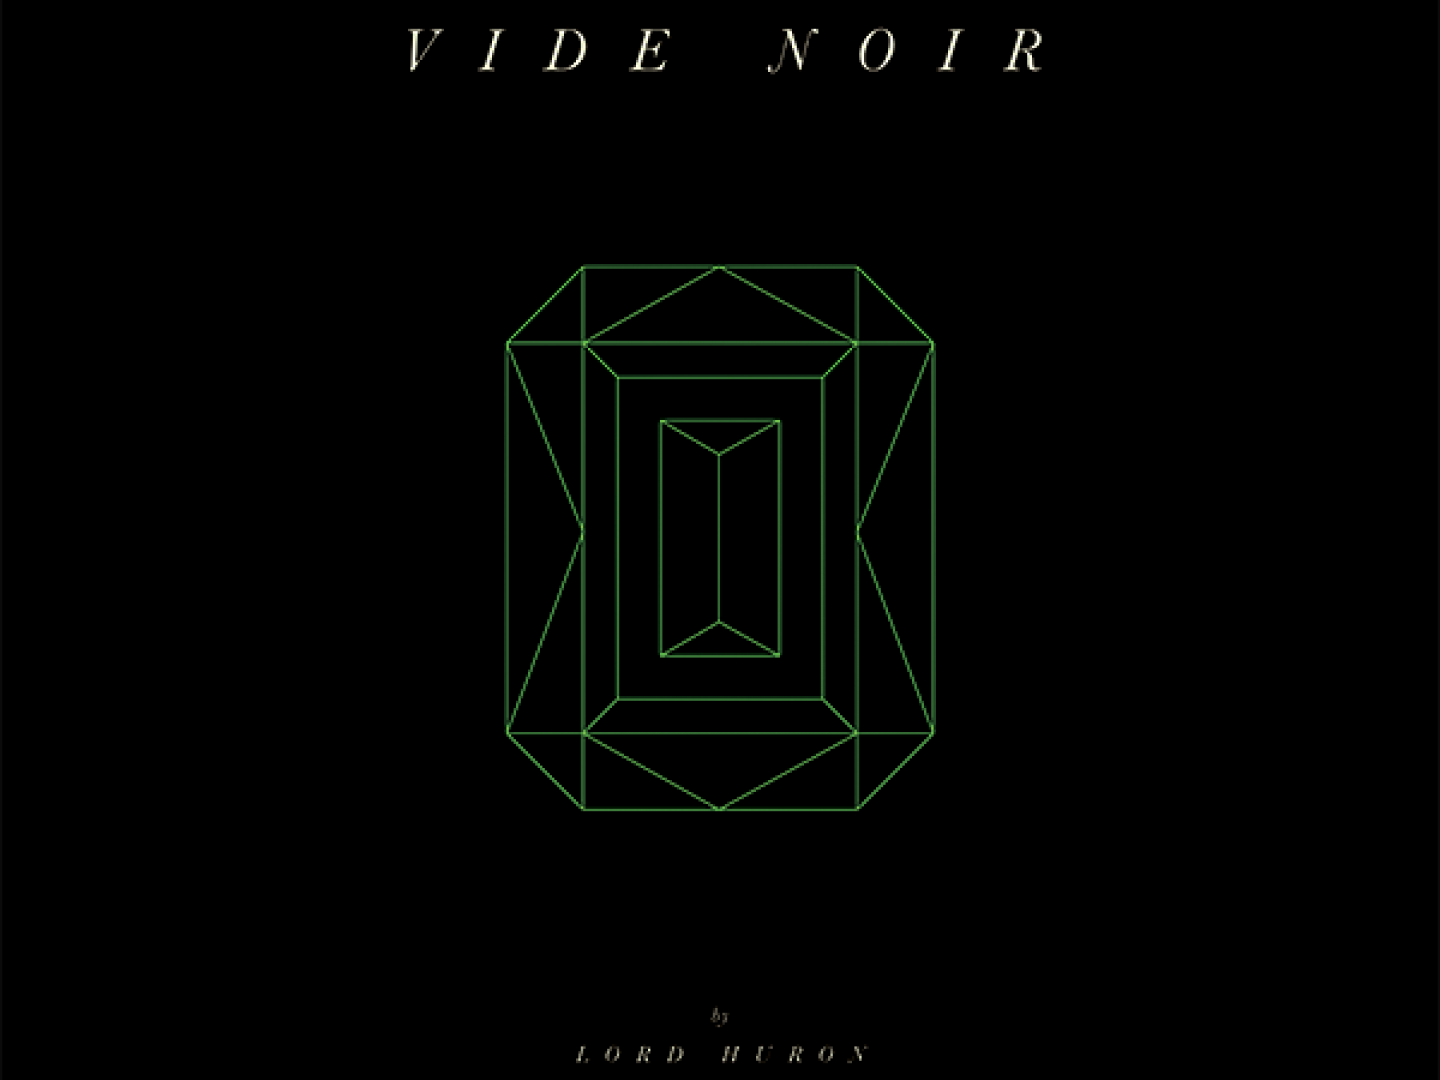 Lord Huron Vide Noir Global Album Launch Campaign Thumbnail